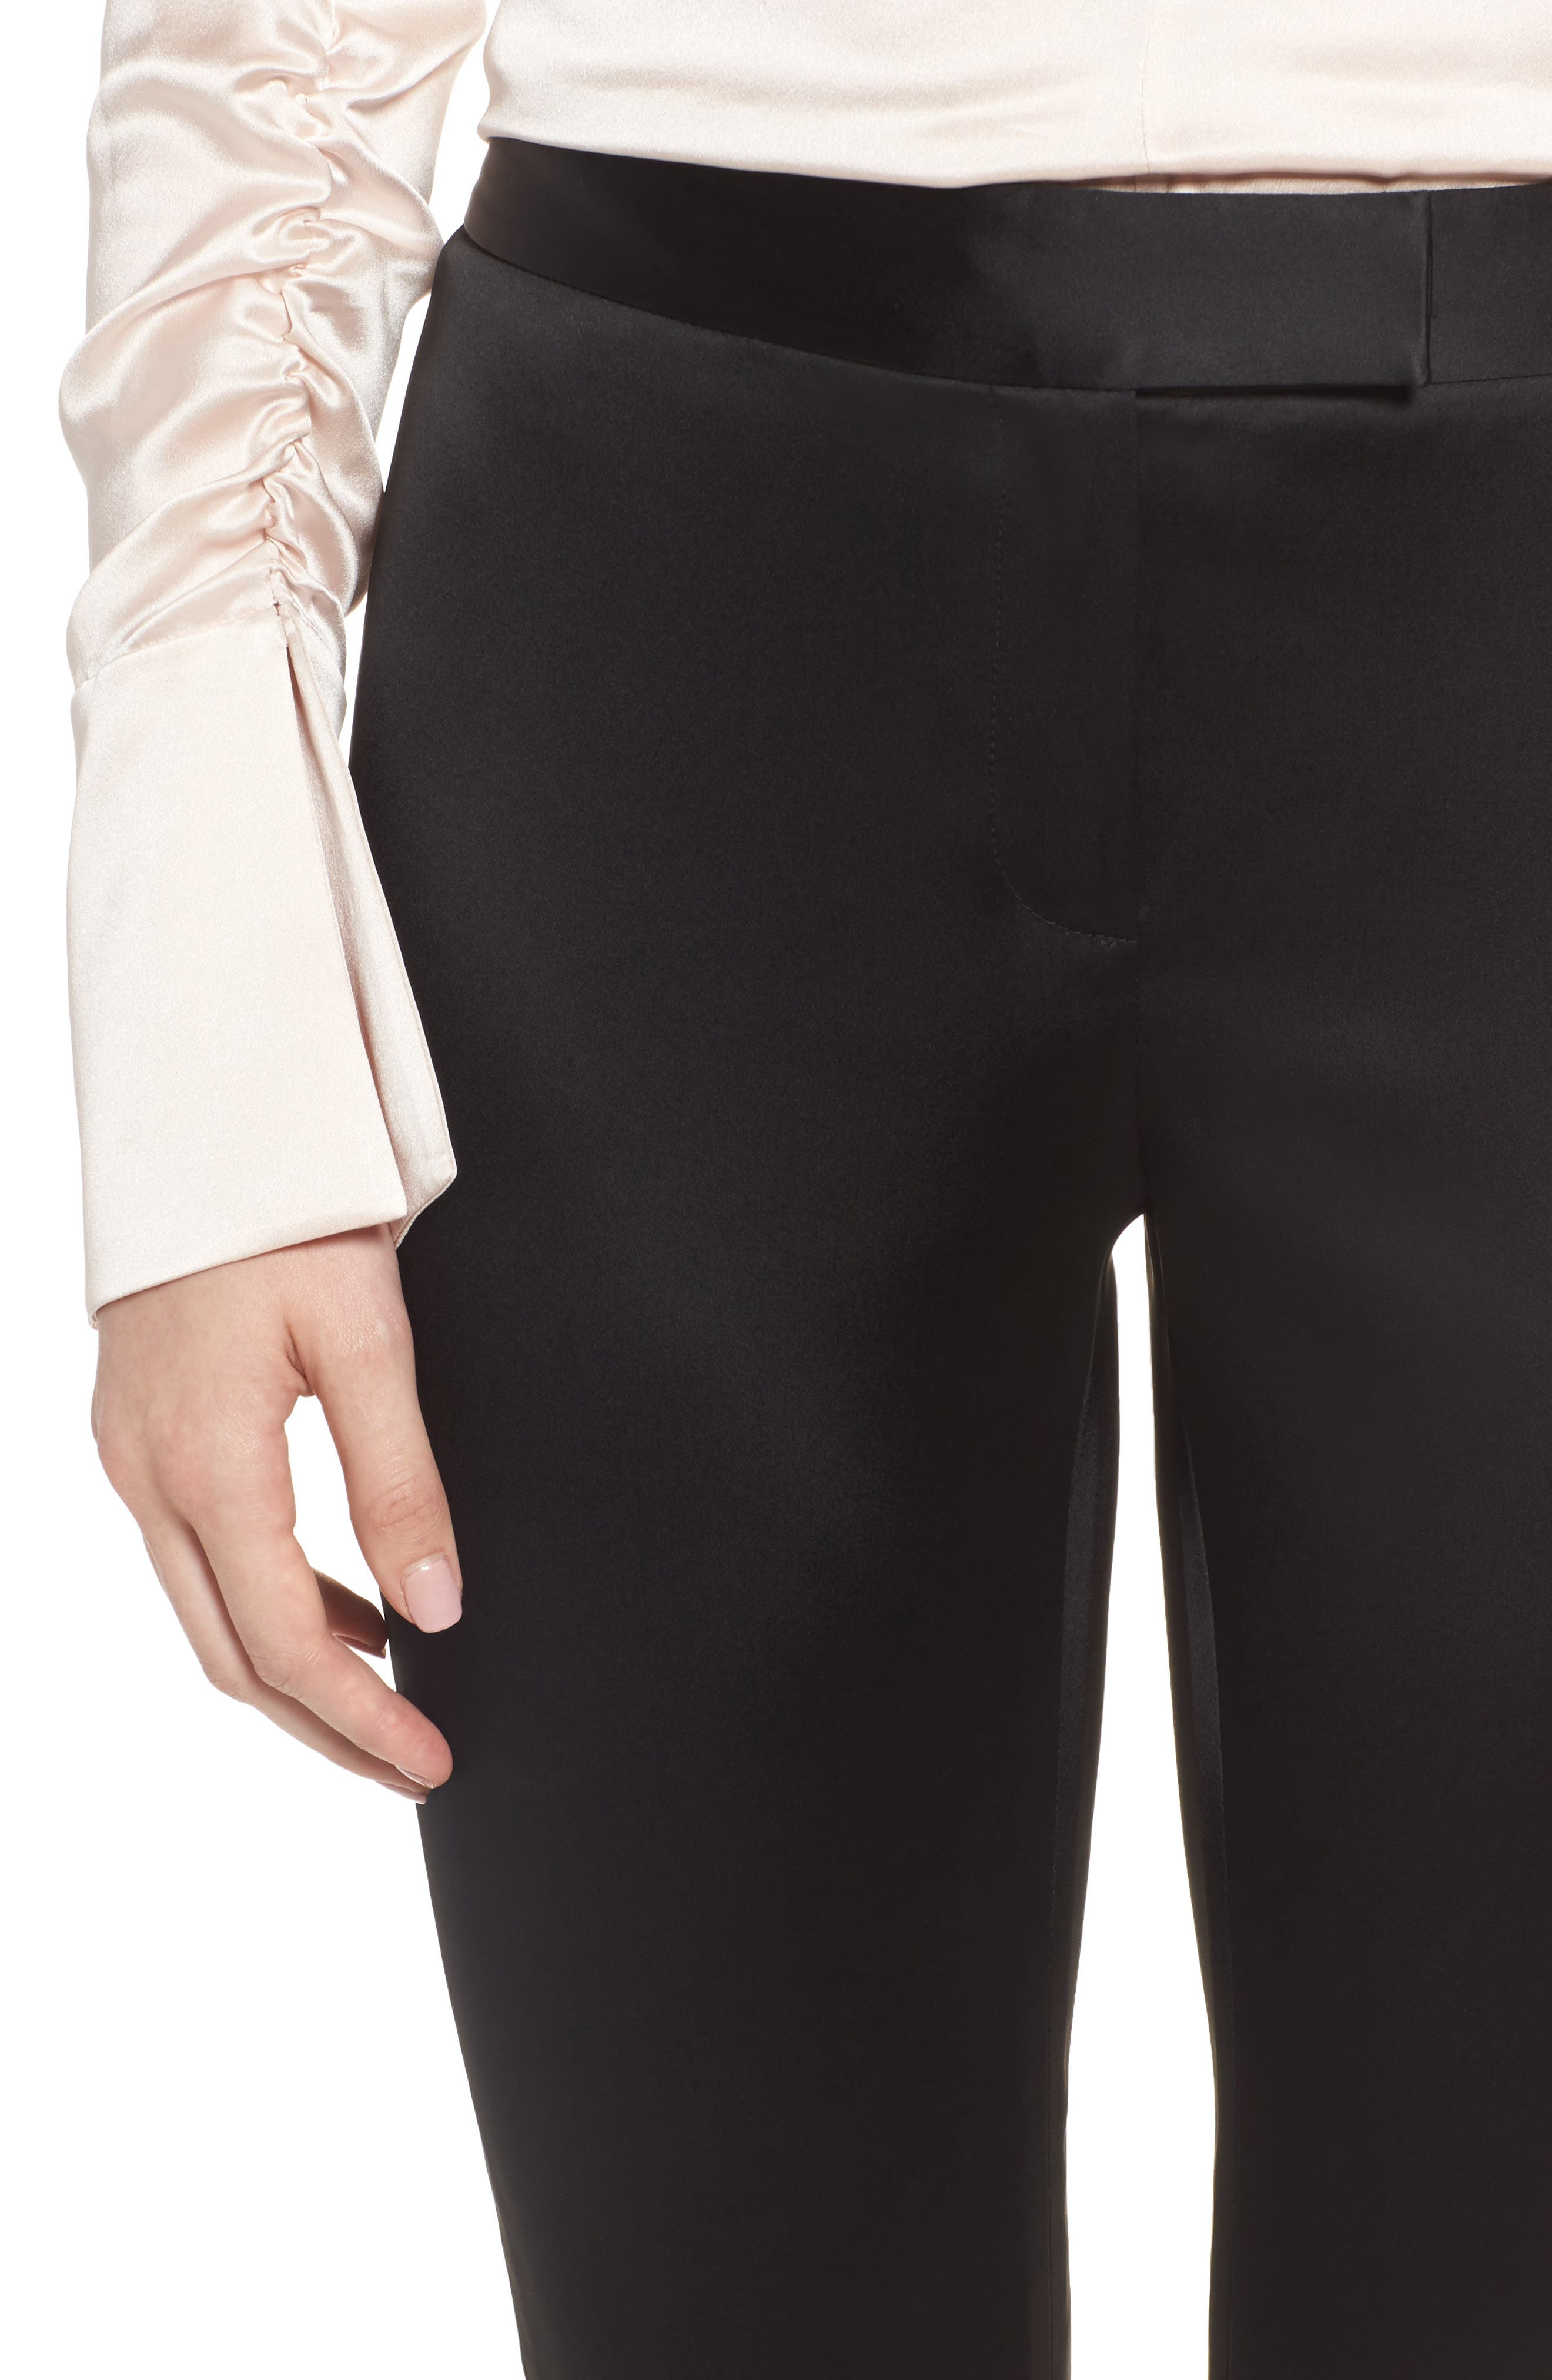 Stretch Satin Skinny Trousers,                             Alternate thumbnail 4, color,                             001